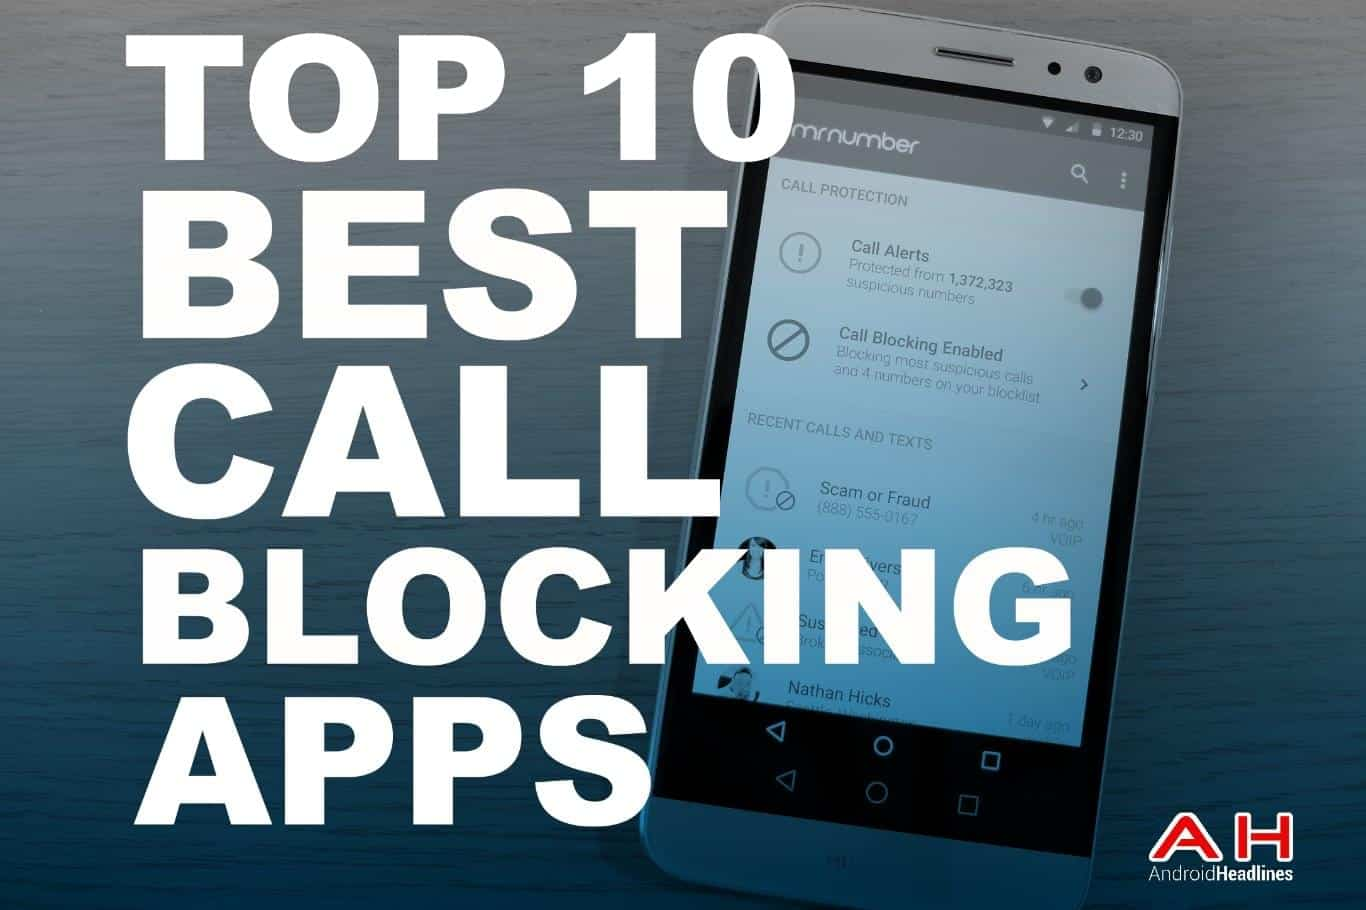 top 10 best call blocker apps for android september 2016